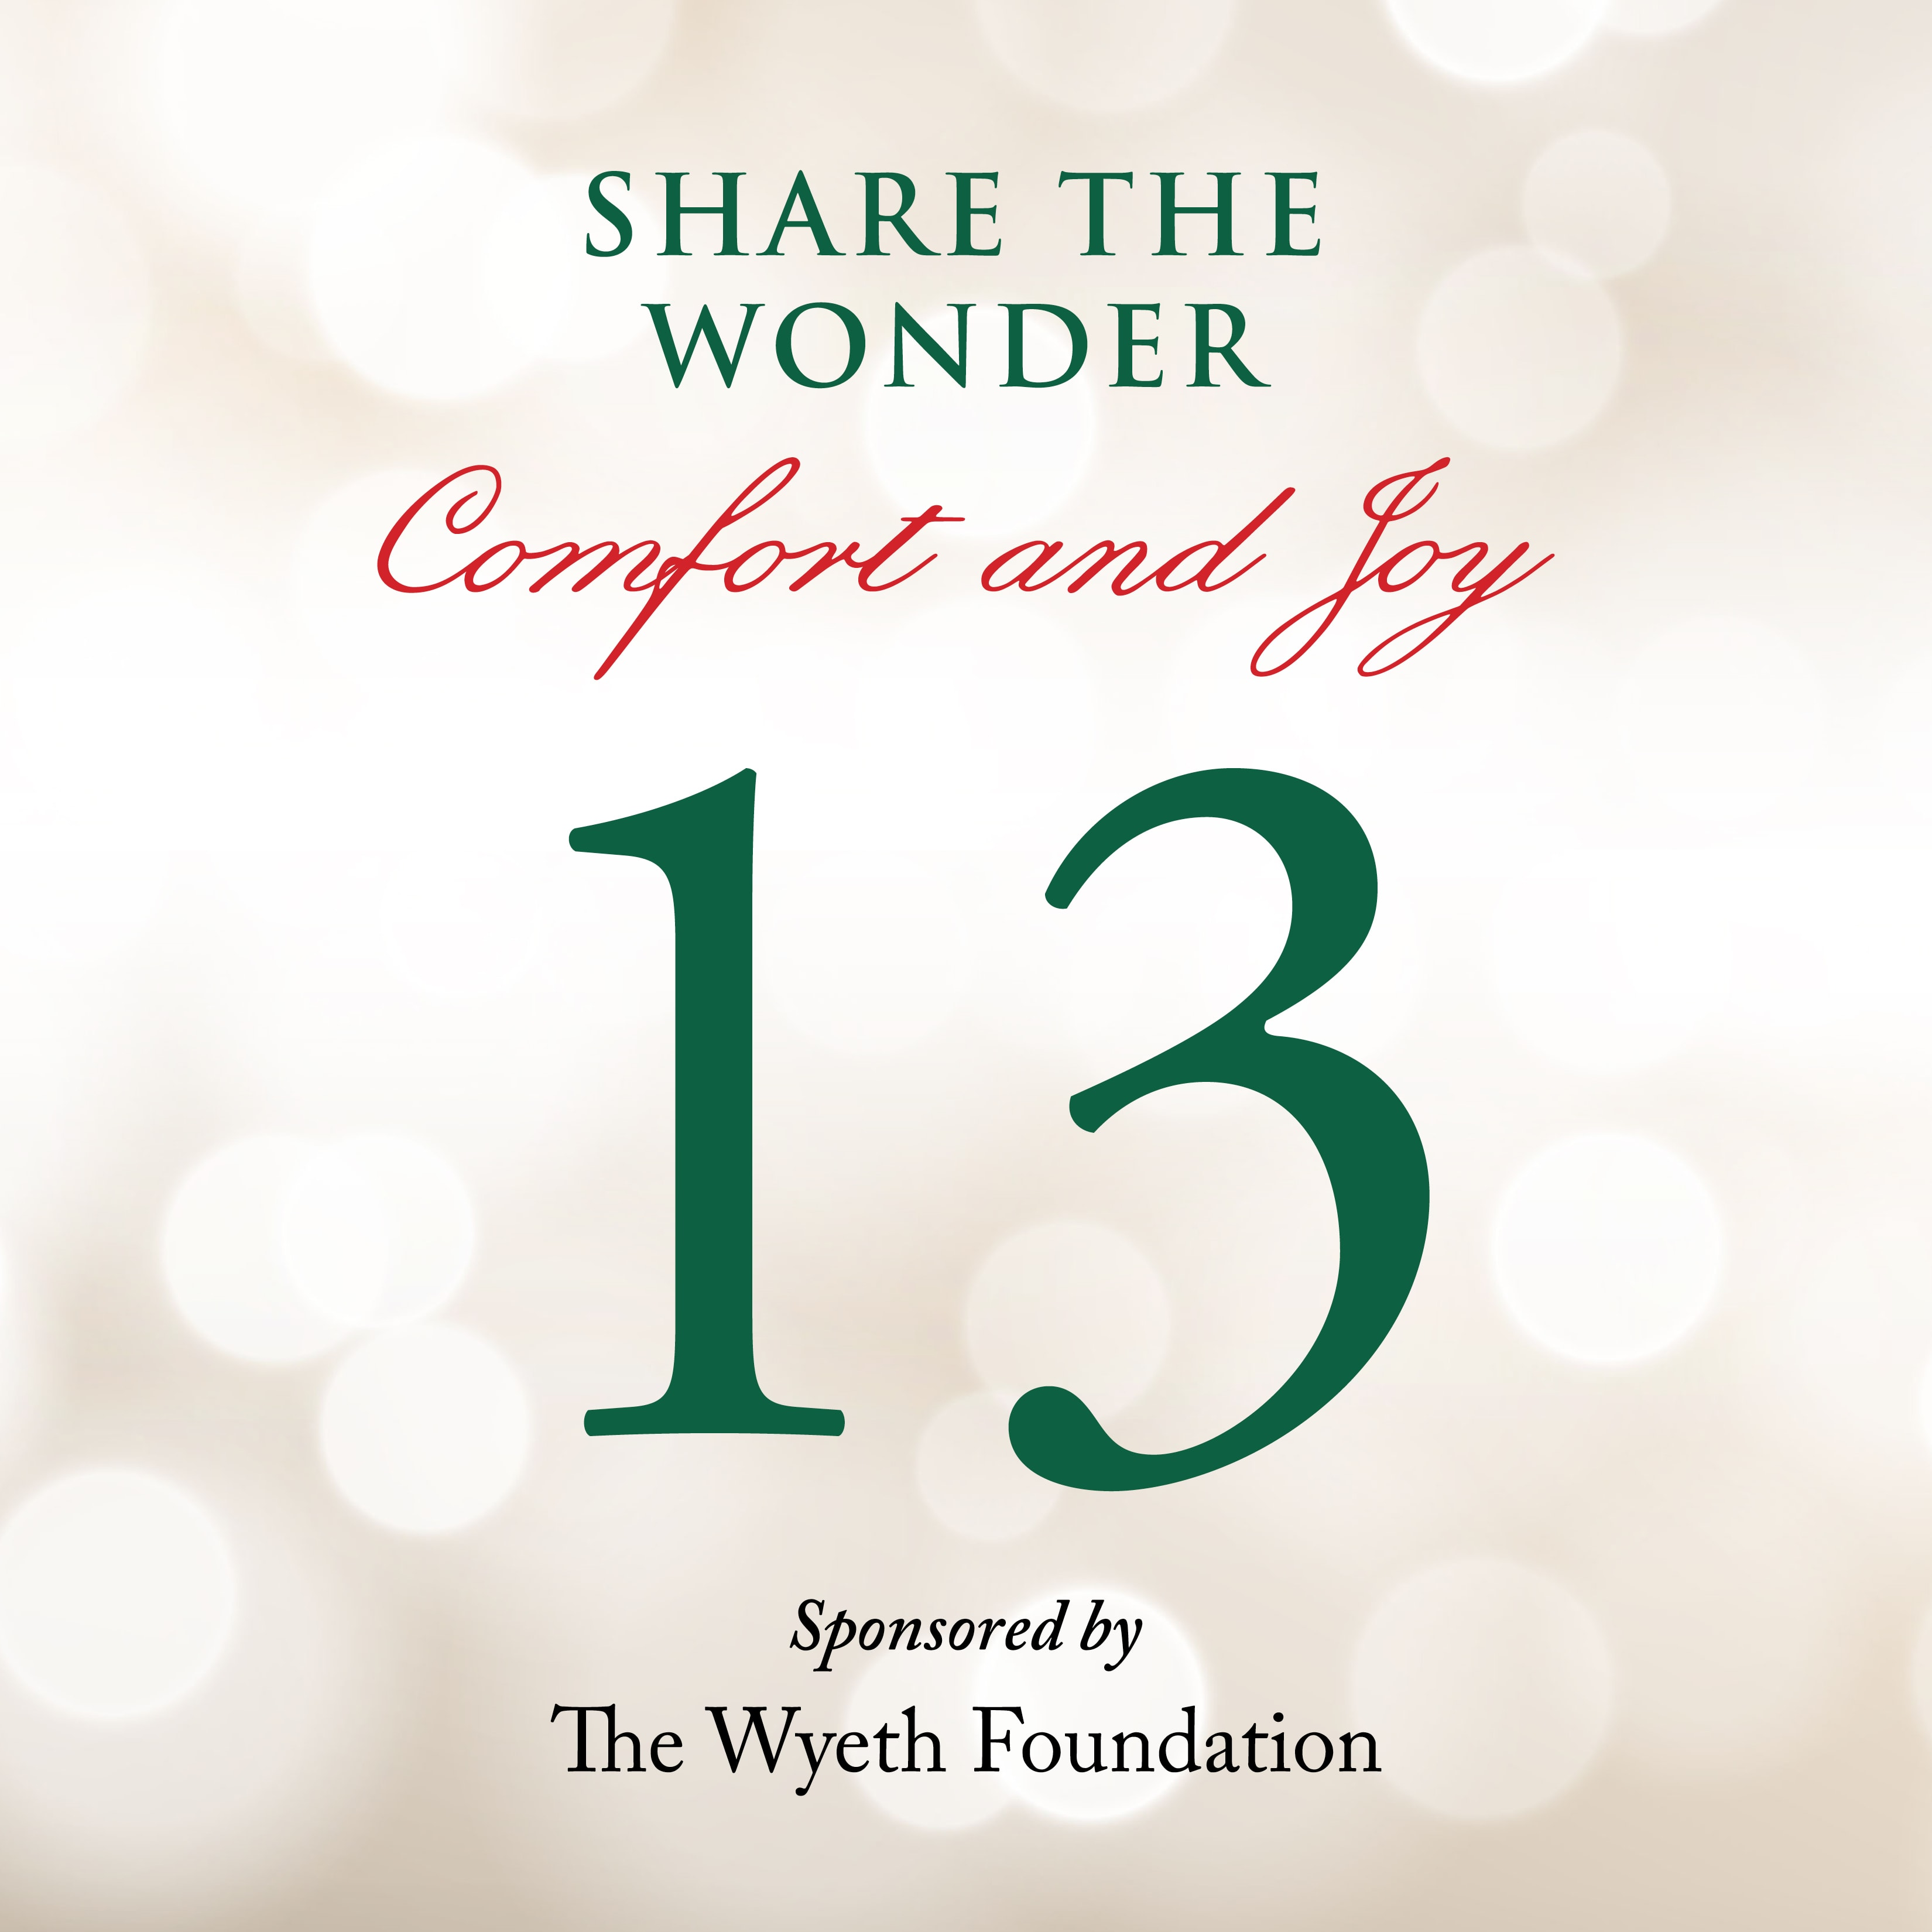 Day 13 of Share the Wonder: December 10